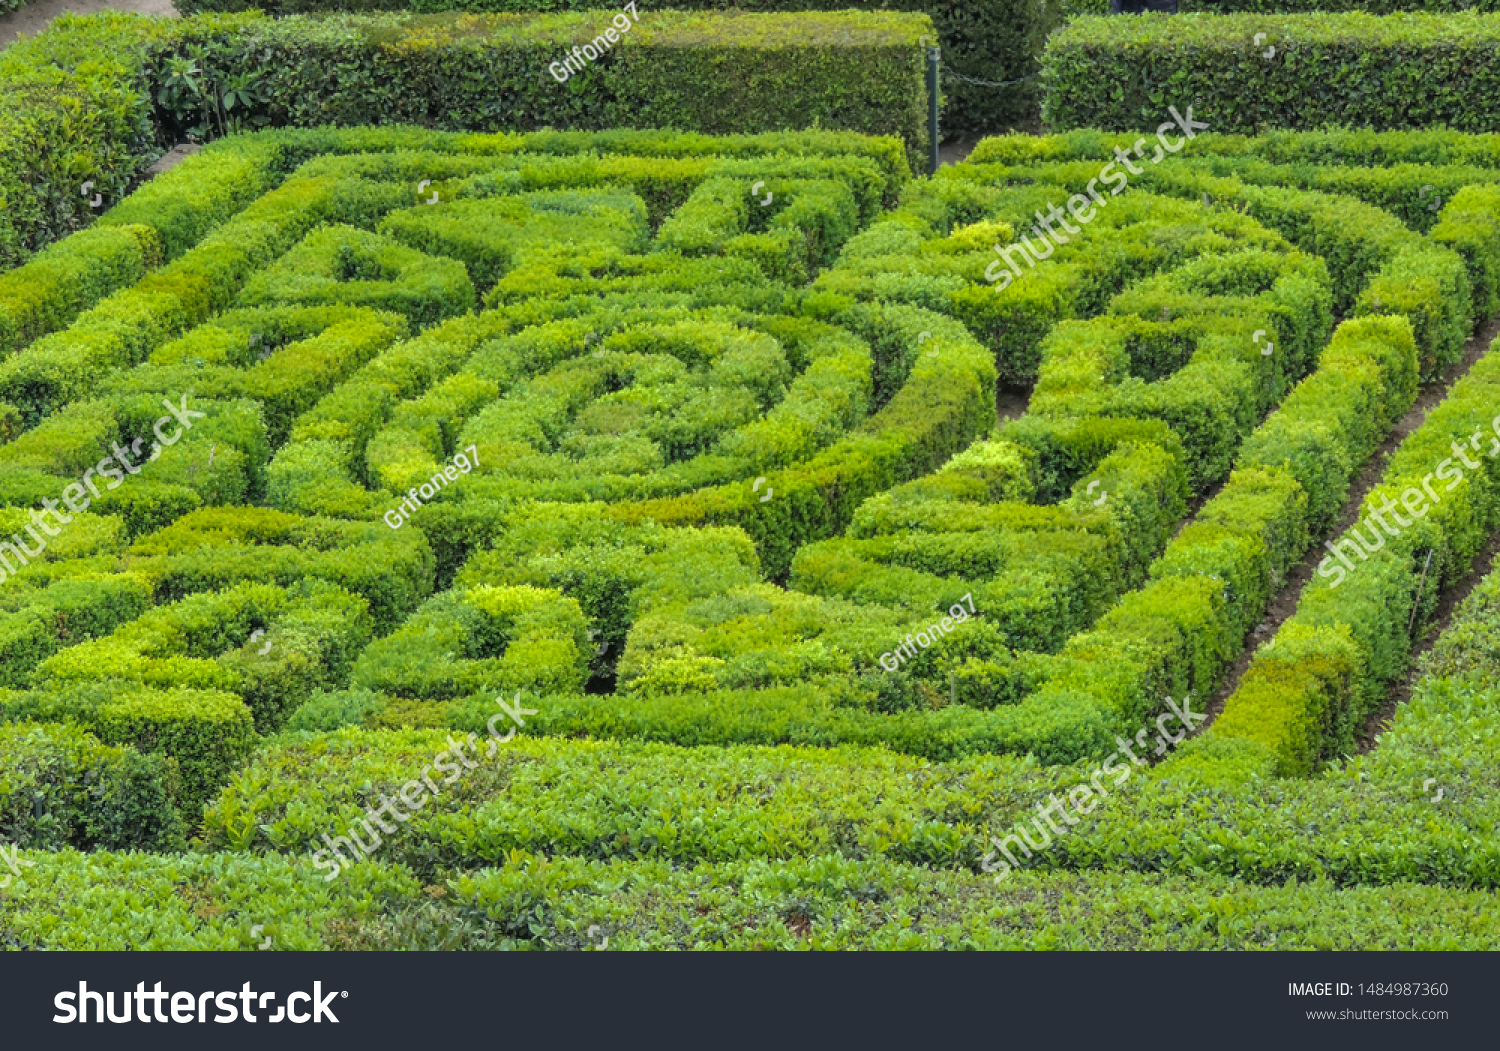 VIGNANELLO, LAZIO, ITALY - April 22 2019: Geometric garden of Castello Ruspoli; this is a great example of Italian Renaissance garden.